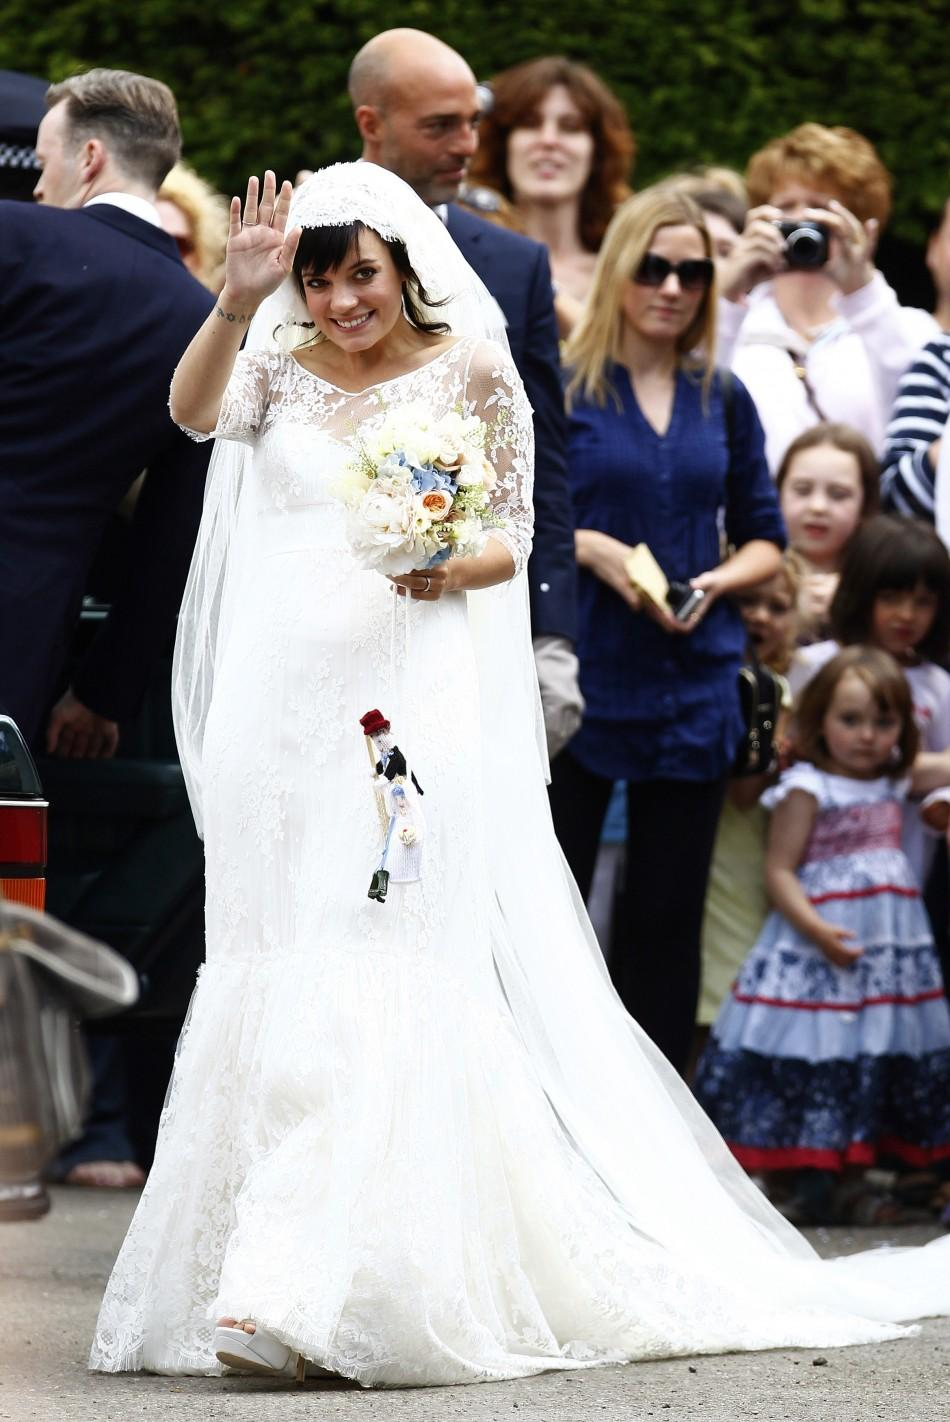 British Singer Allen waves after marrying Cooper as the couple leaves St James the Great Church in Cranham